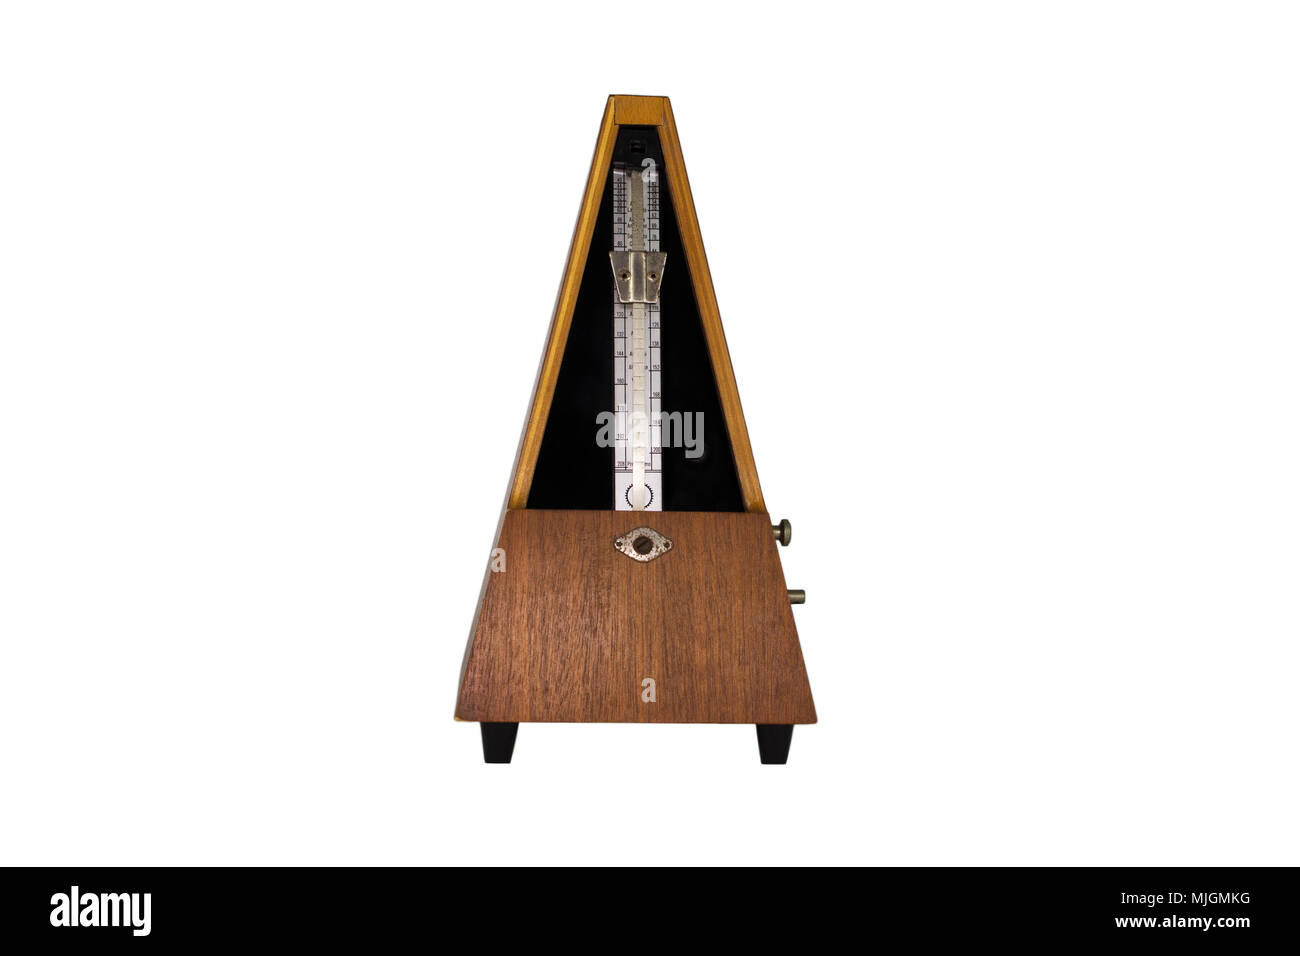 Vintage Metronome Isolated On White Background. Musical Equipment - Stock Image